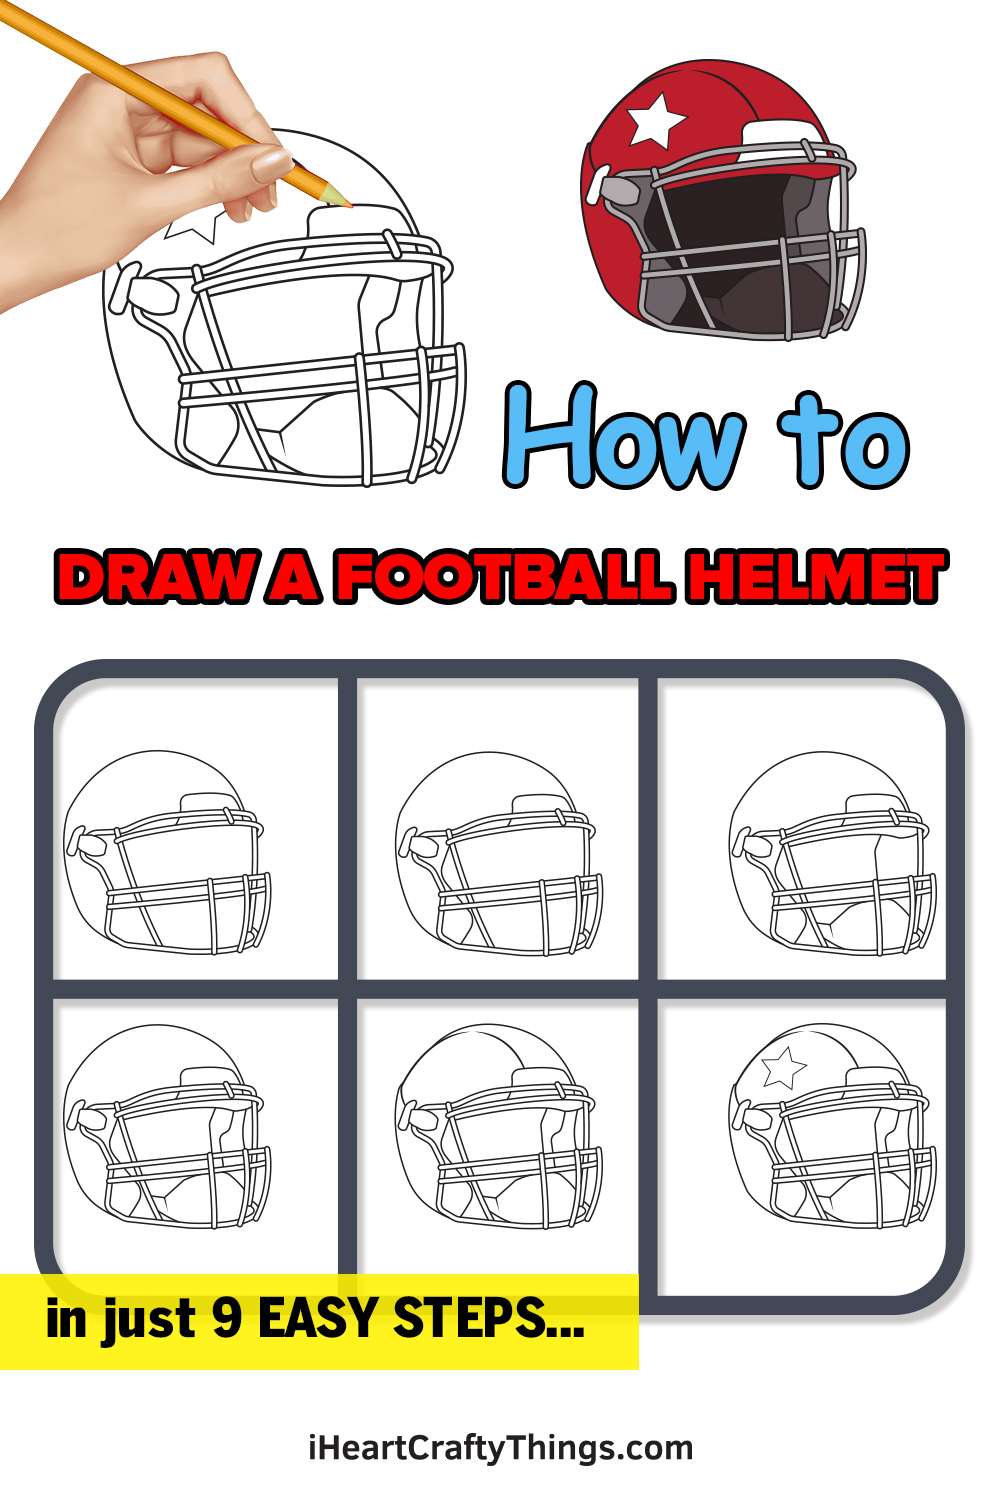 how to draw a football helmet in 9 easy steps